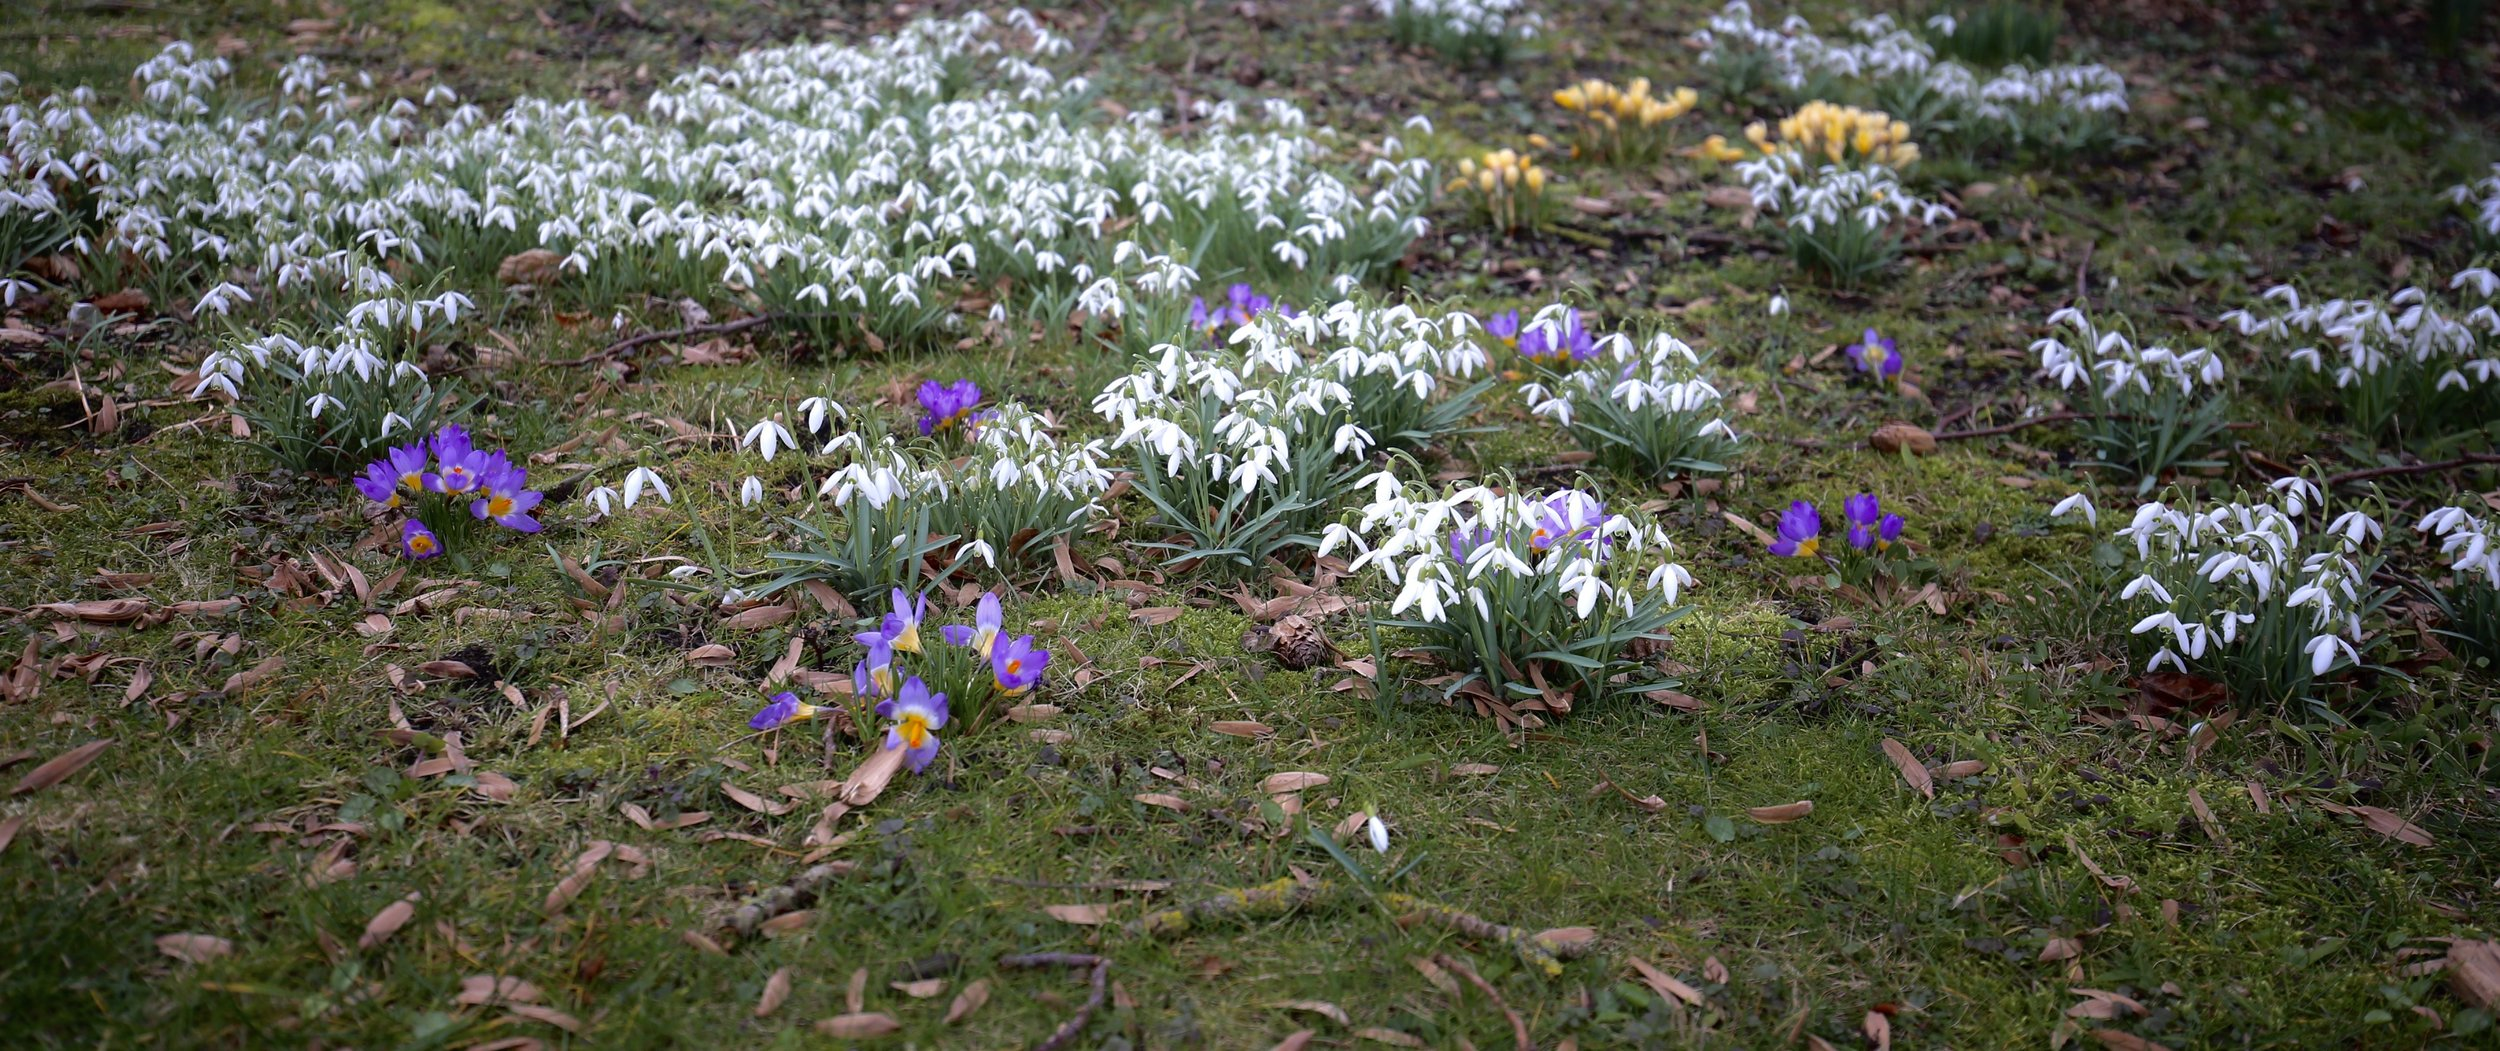 Snowdrops and crocuses in Giethoorn, Spring in the Netherlands.